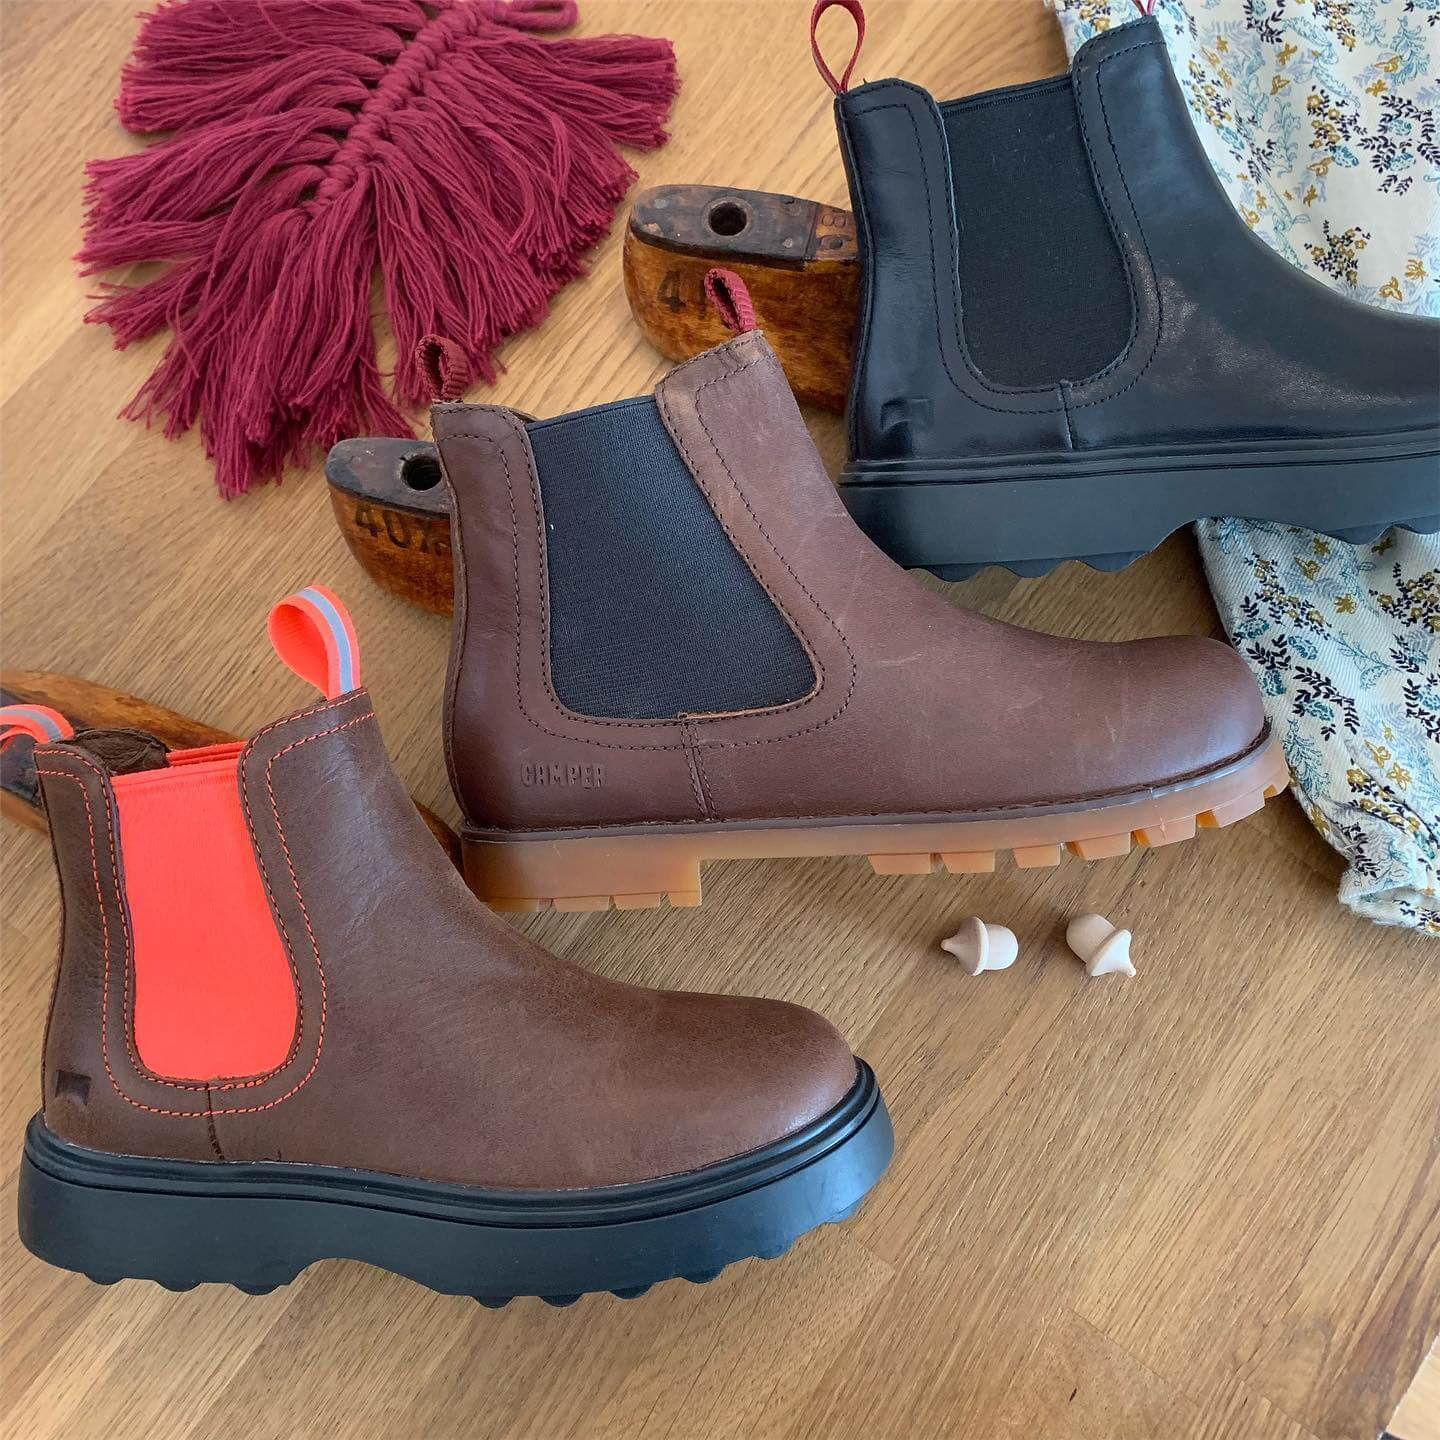 Chelsea Boots | The Mustcard